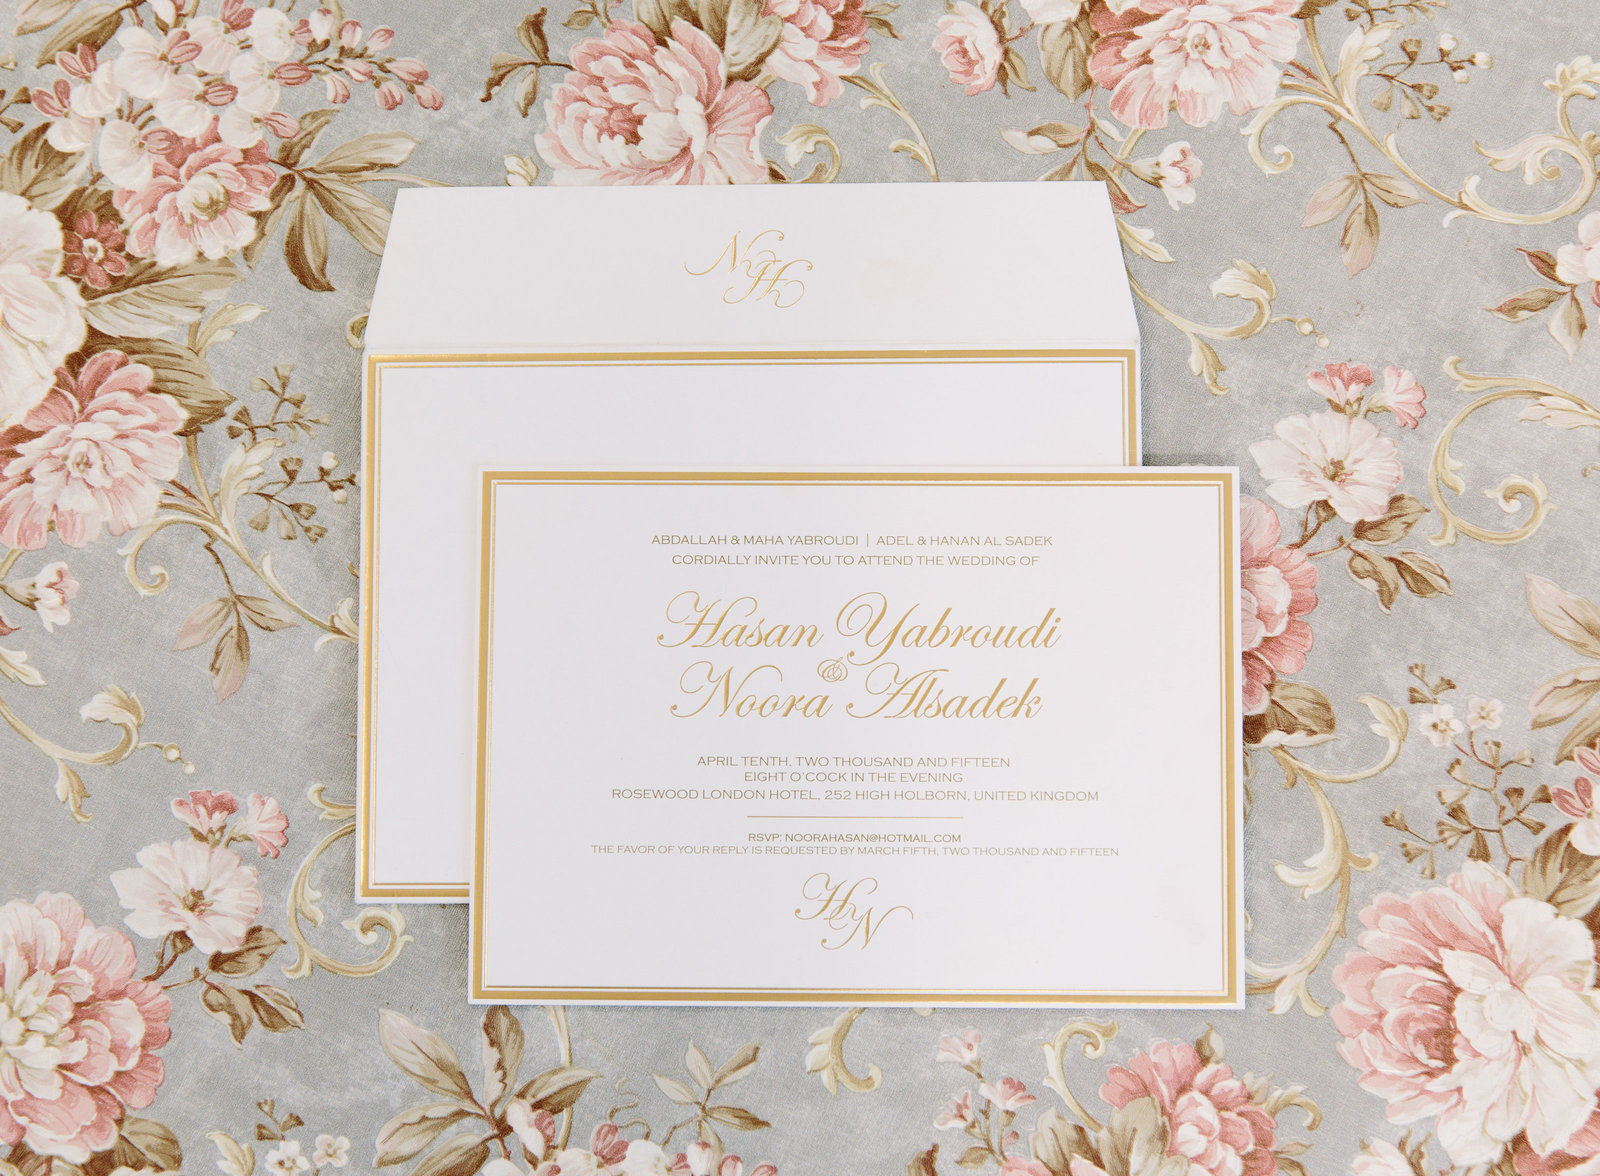 Unique Luxury Wedding Invitations and stationery